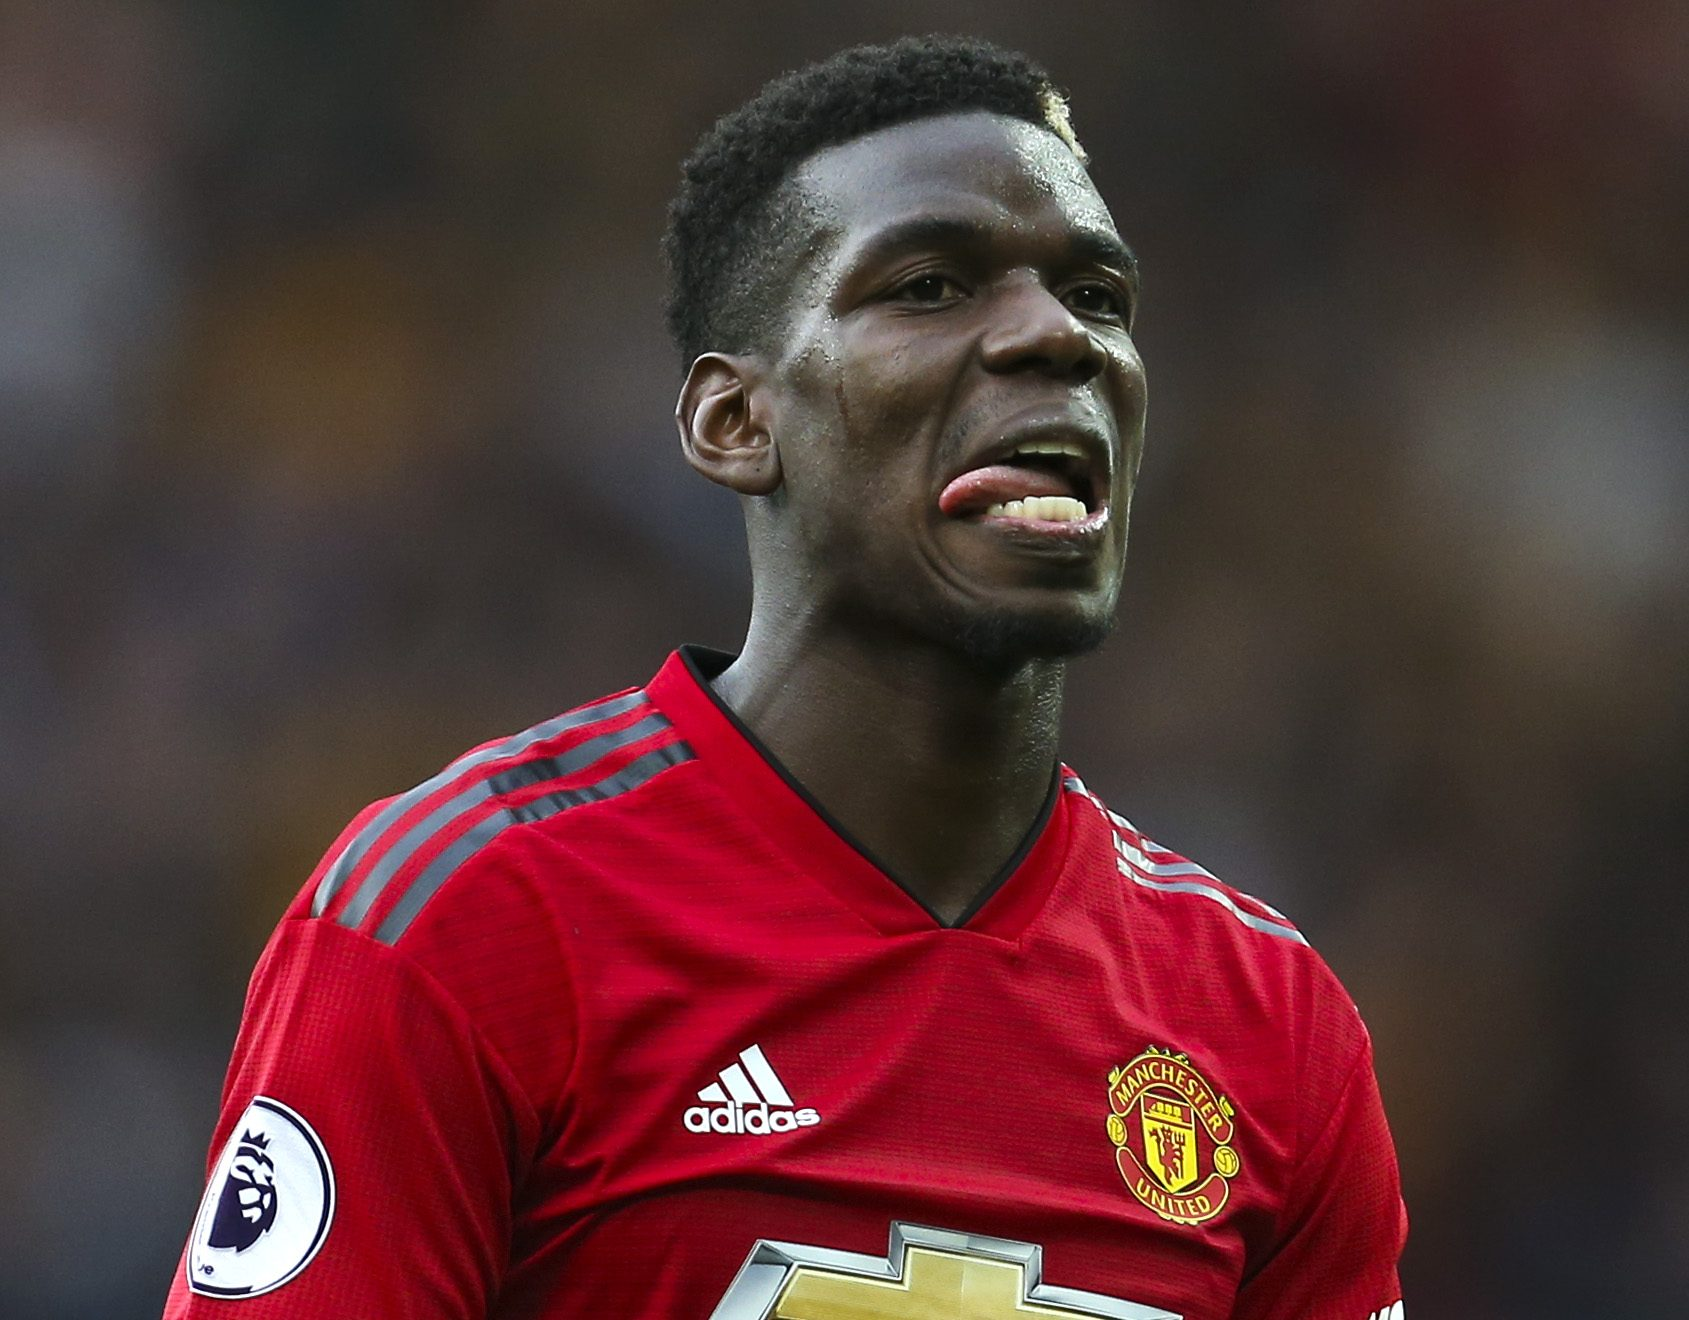 Jose Mourinho explains Paul Pogba's absence in Manchester United's clash with Derby